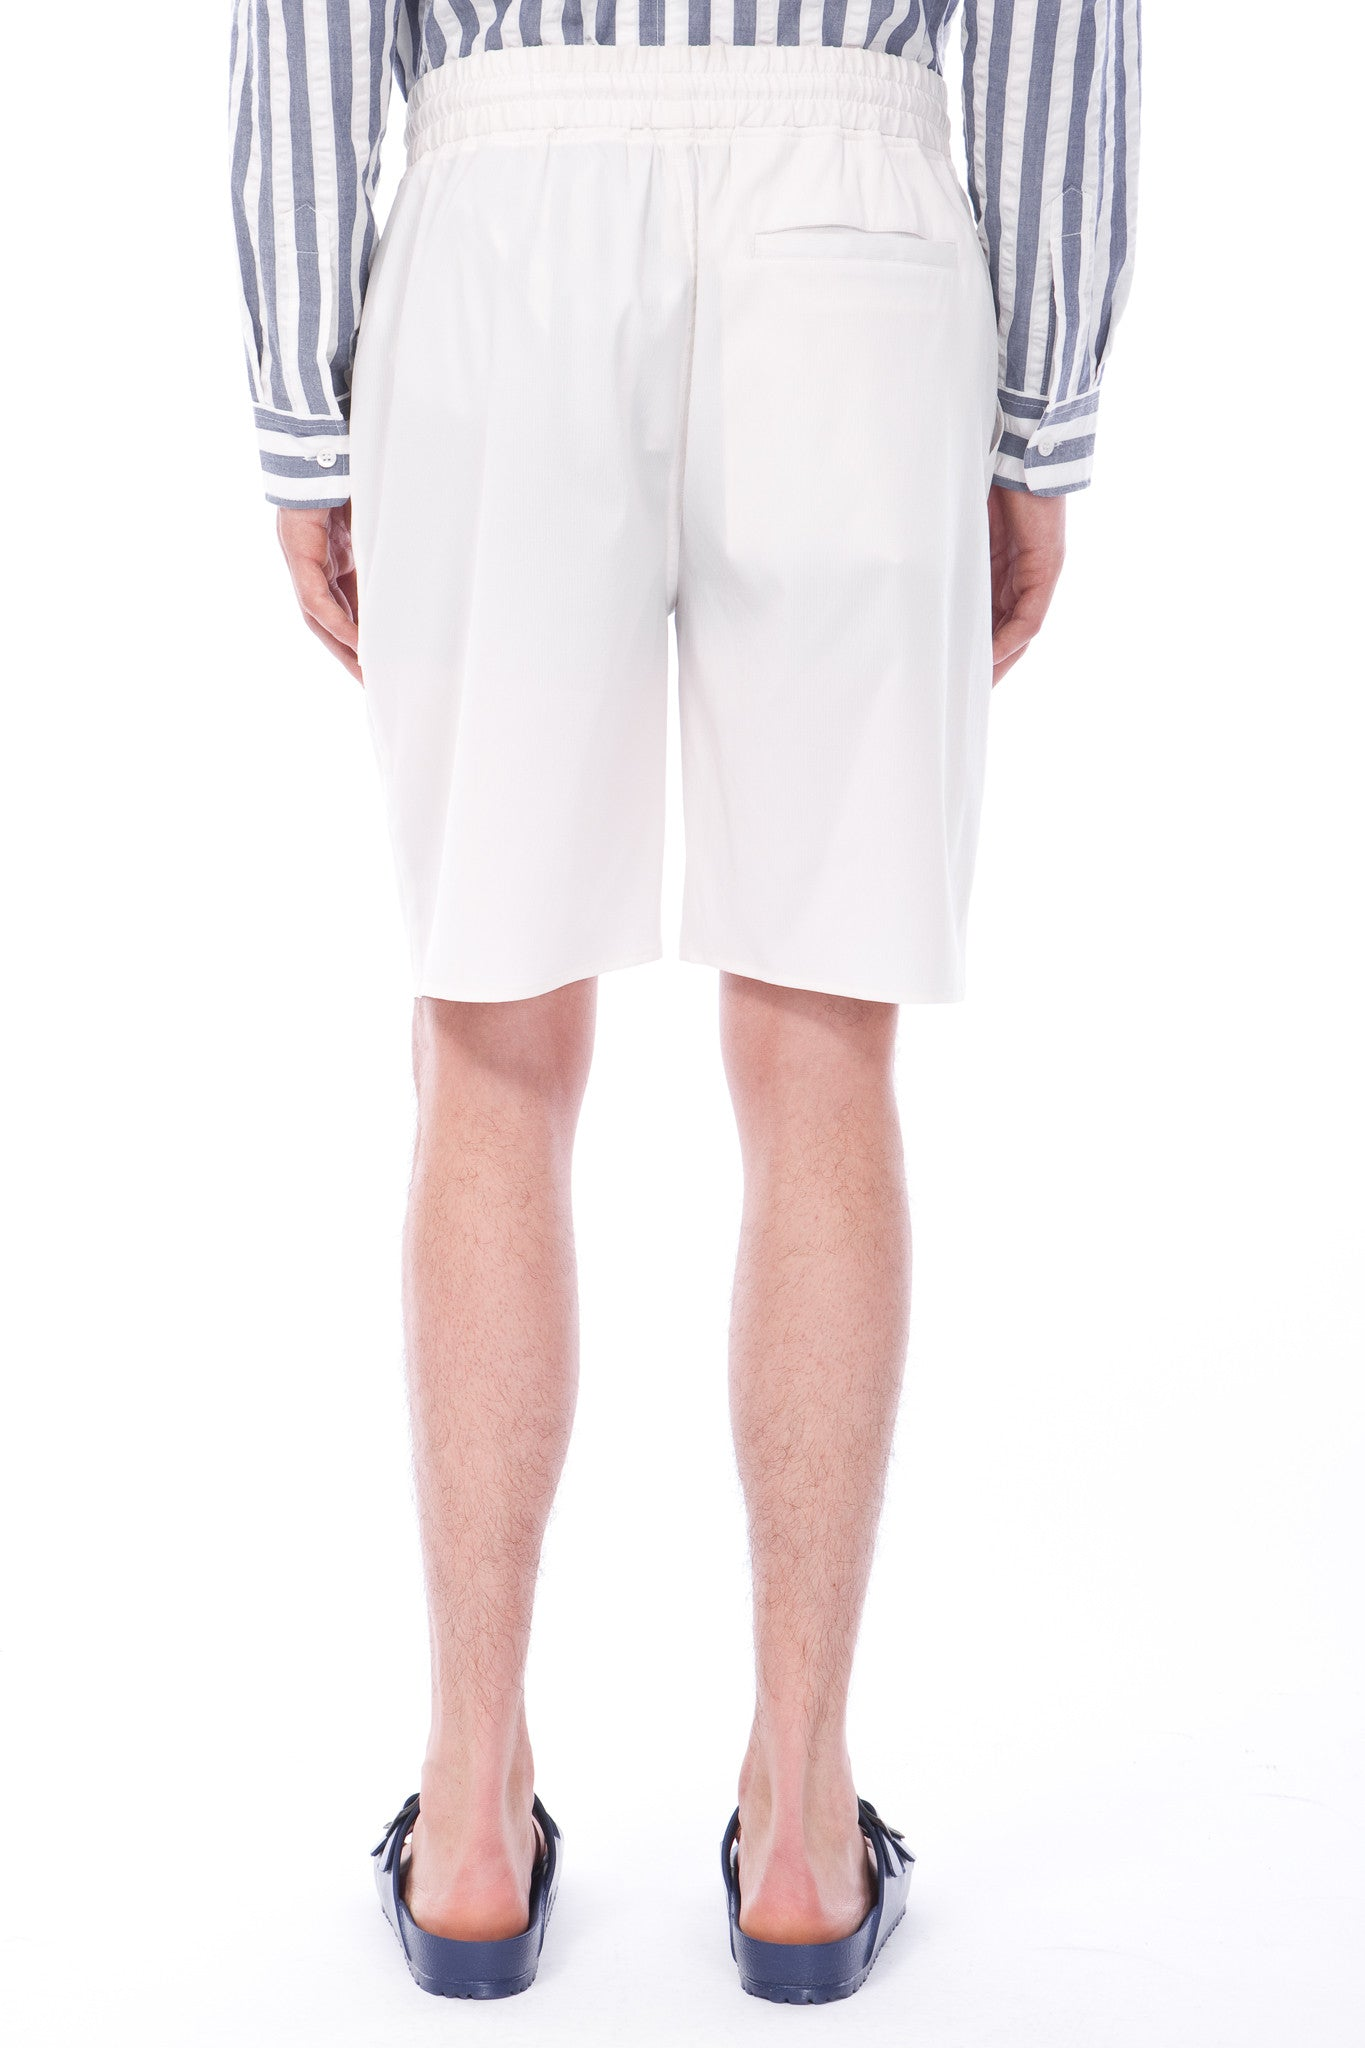 HASTEN - SHORT - WHITE